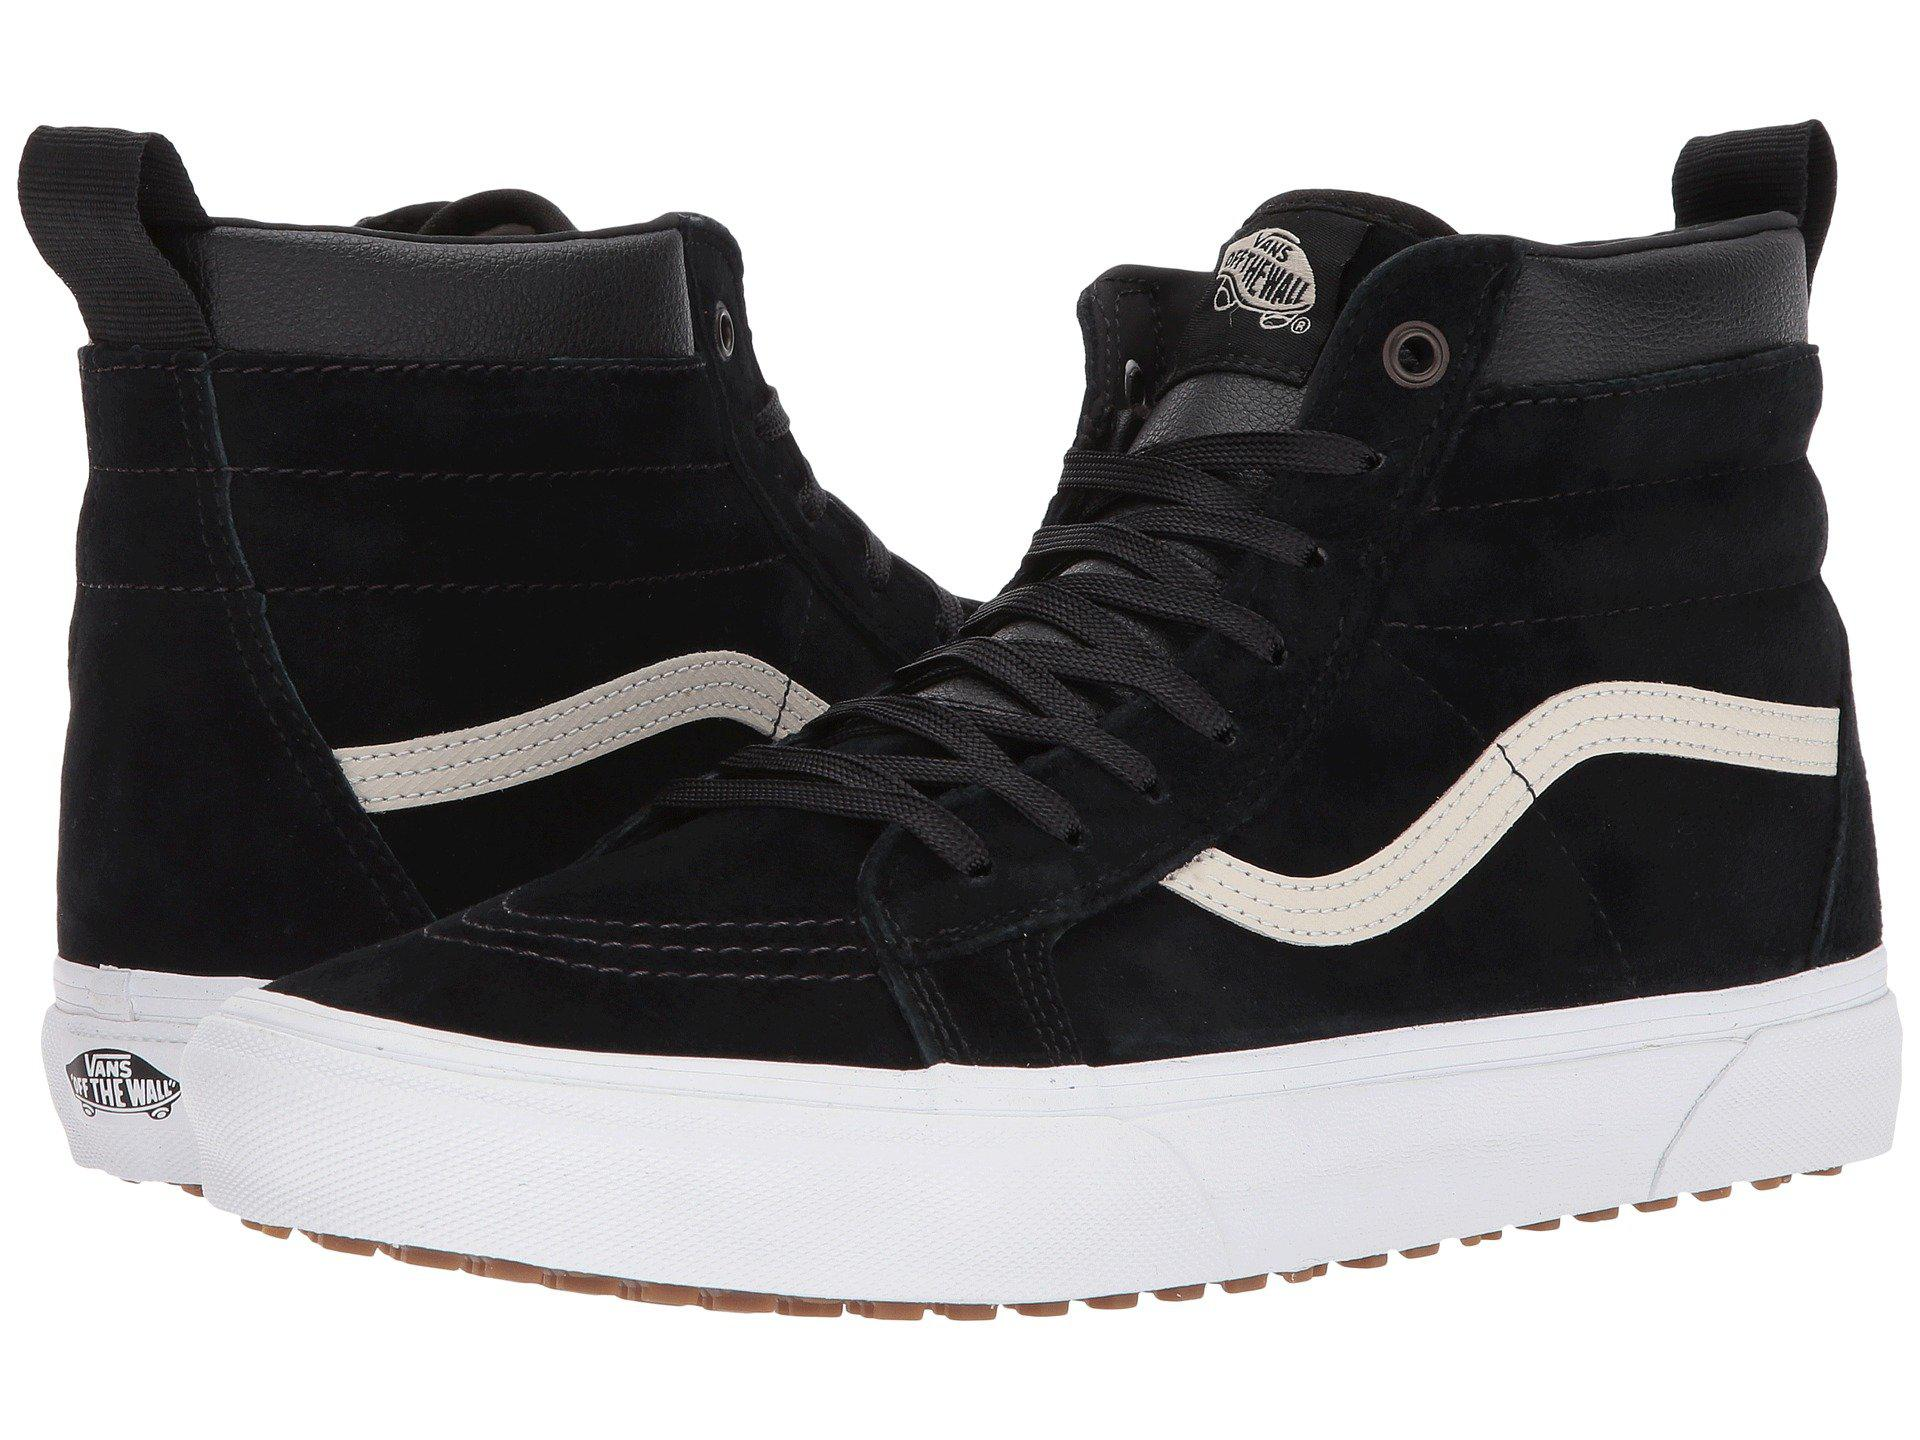 4e15b0a7b Lyst - Vans Sk8-hi Mte ((mte) Winter Moss military) Skate Shoes in ...